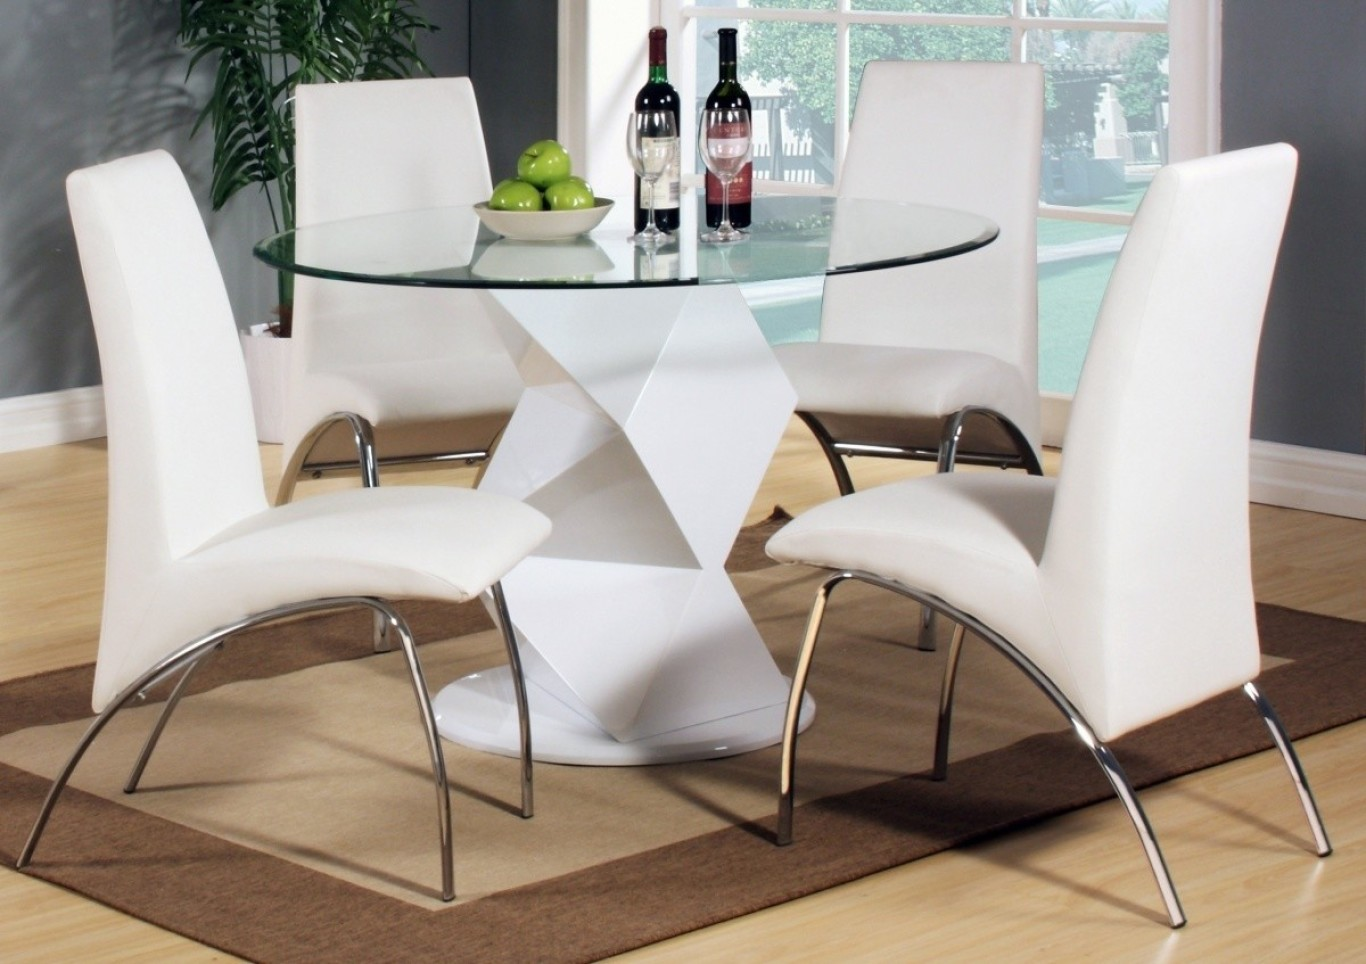 Large Images of Round Glass Dining Table Decorating Ideas Round Glass  Dinner Table Set Tall Round